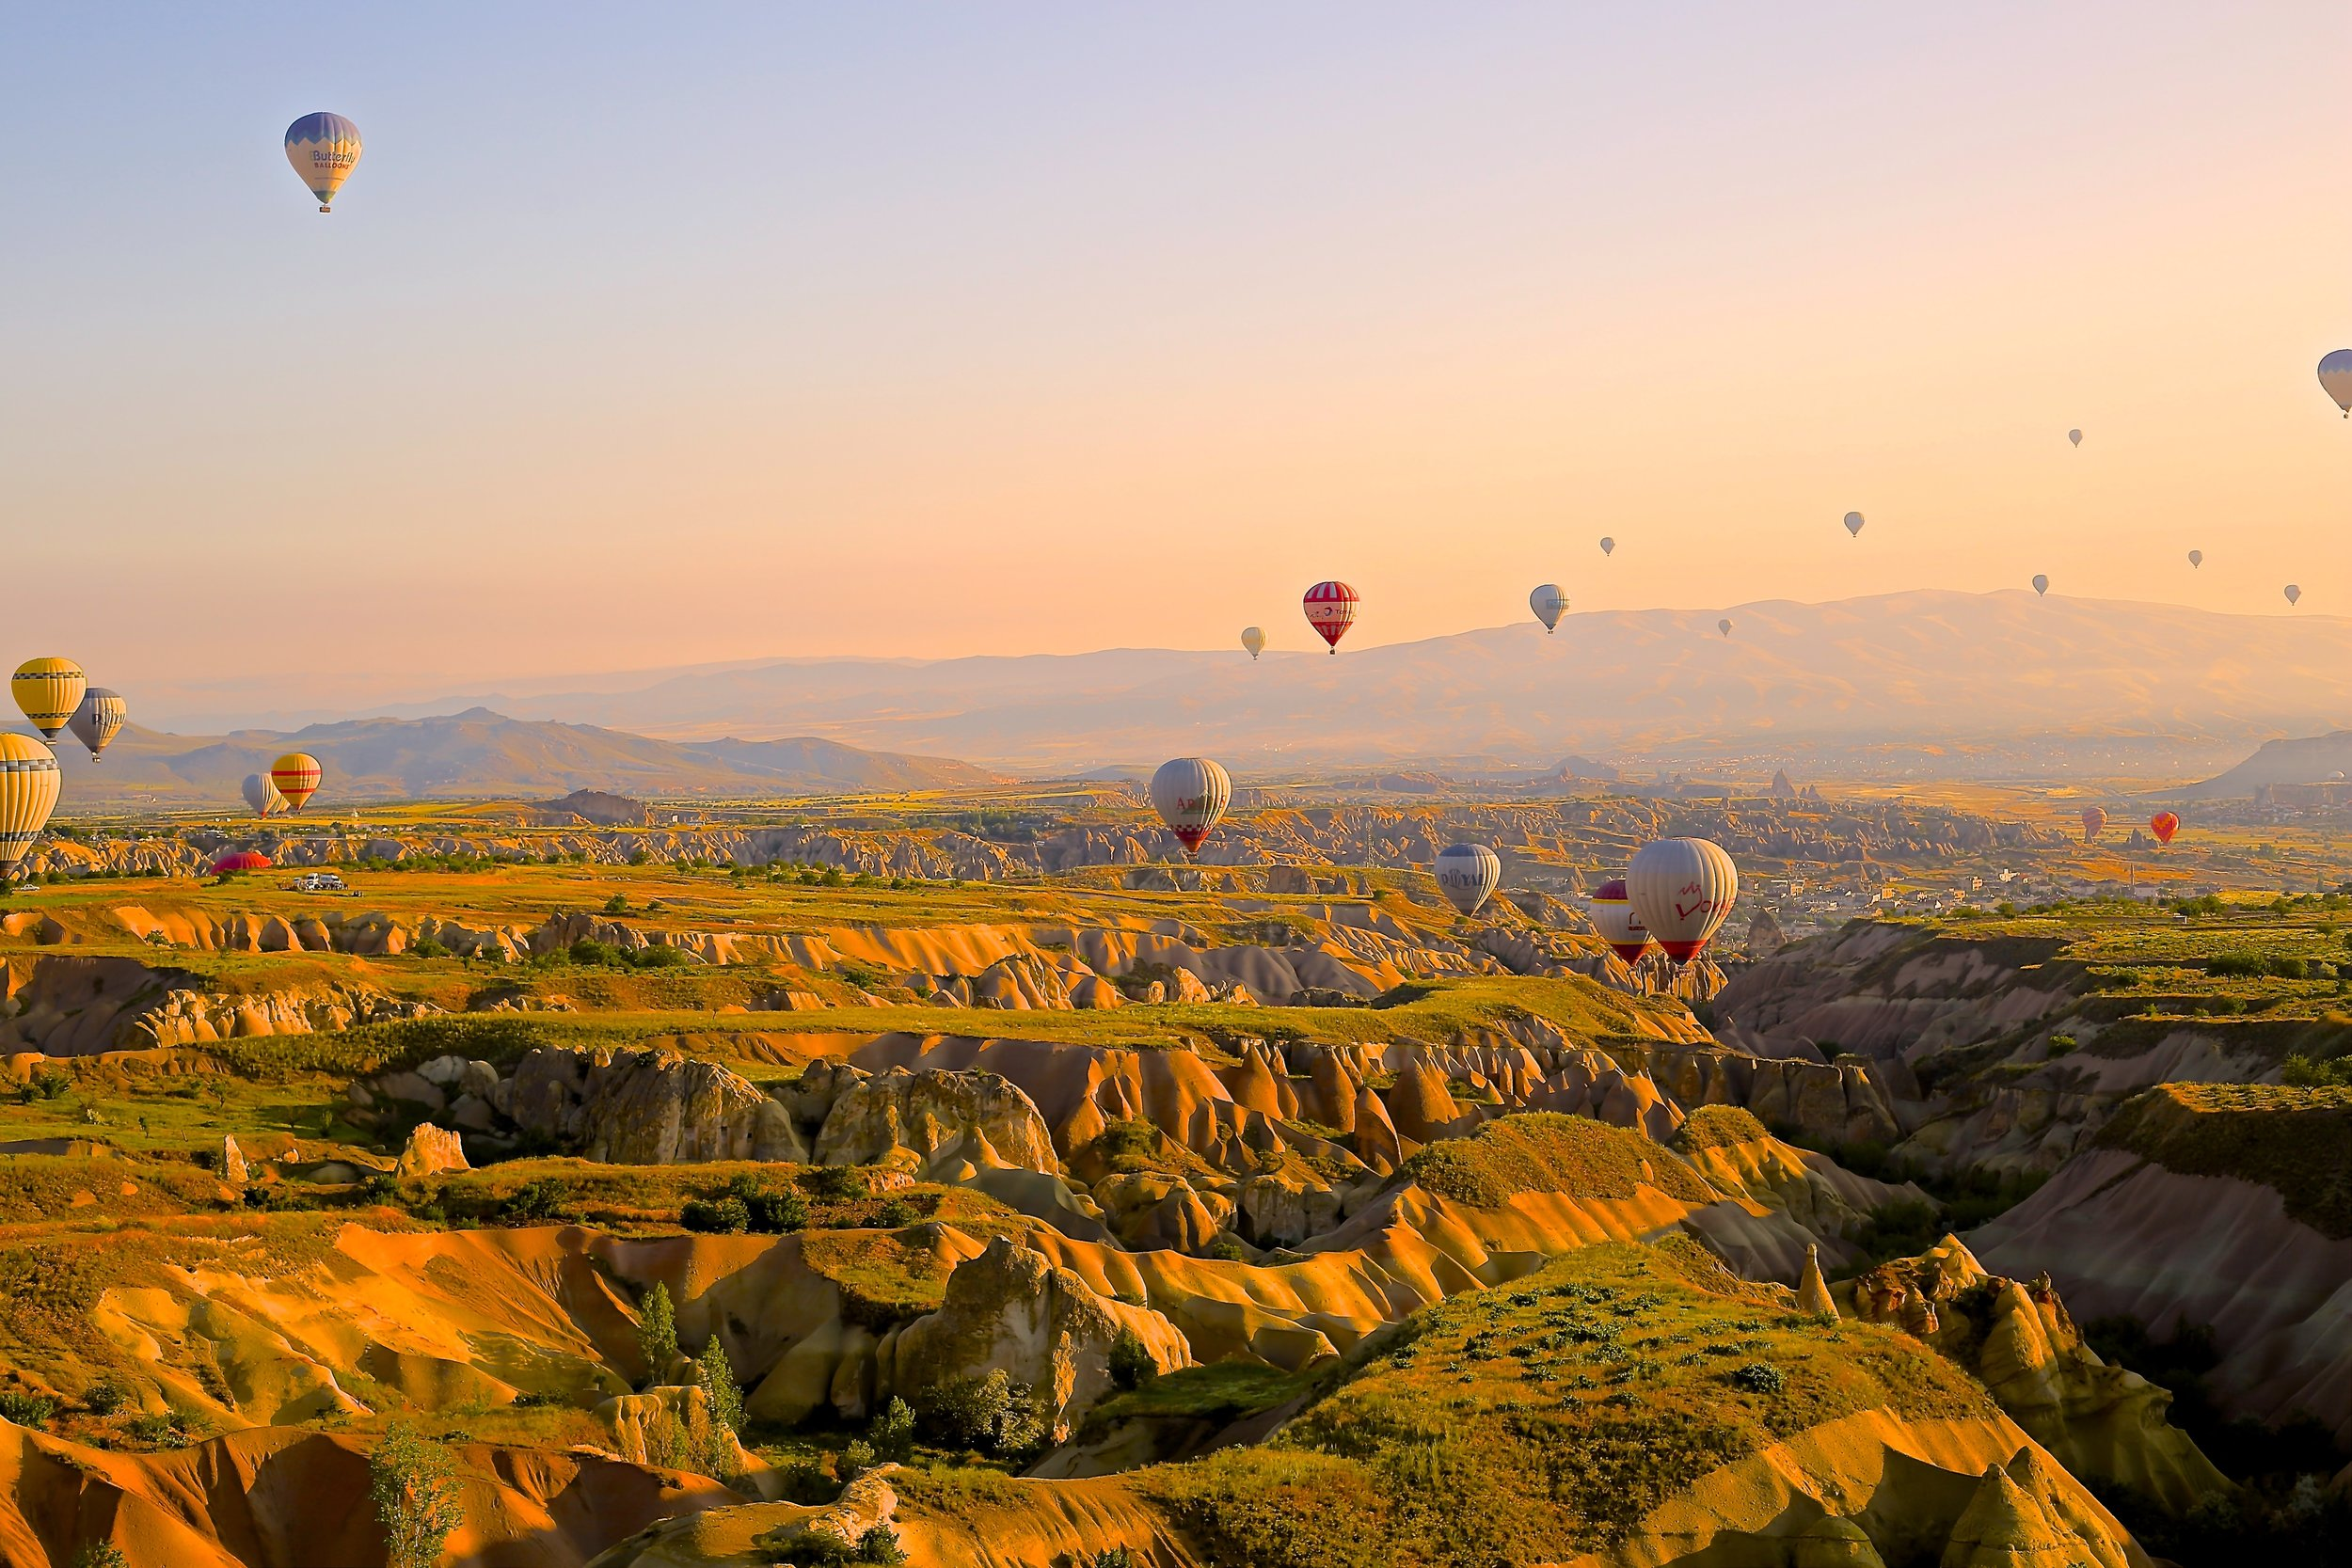 Cappadocia, Turkey. Image from Unsplash, by Daniela Cuevas.